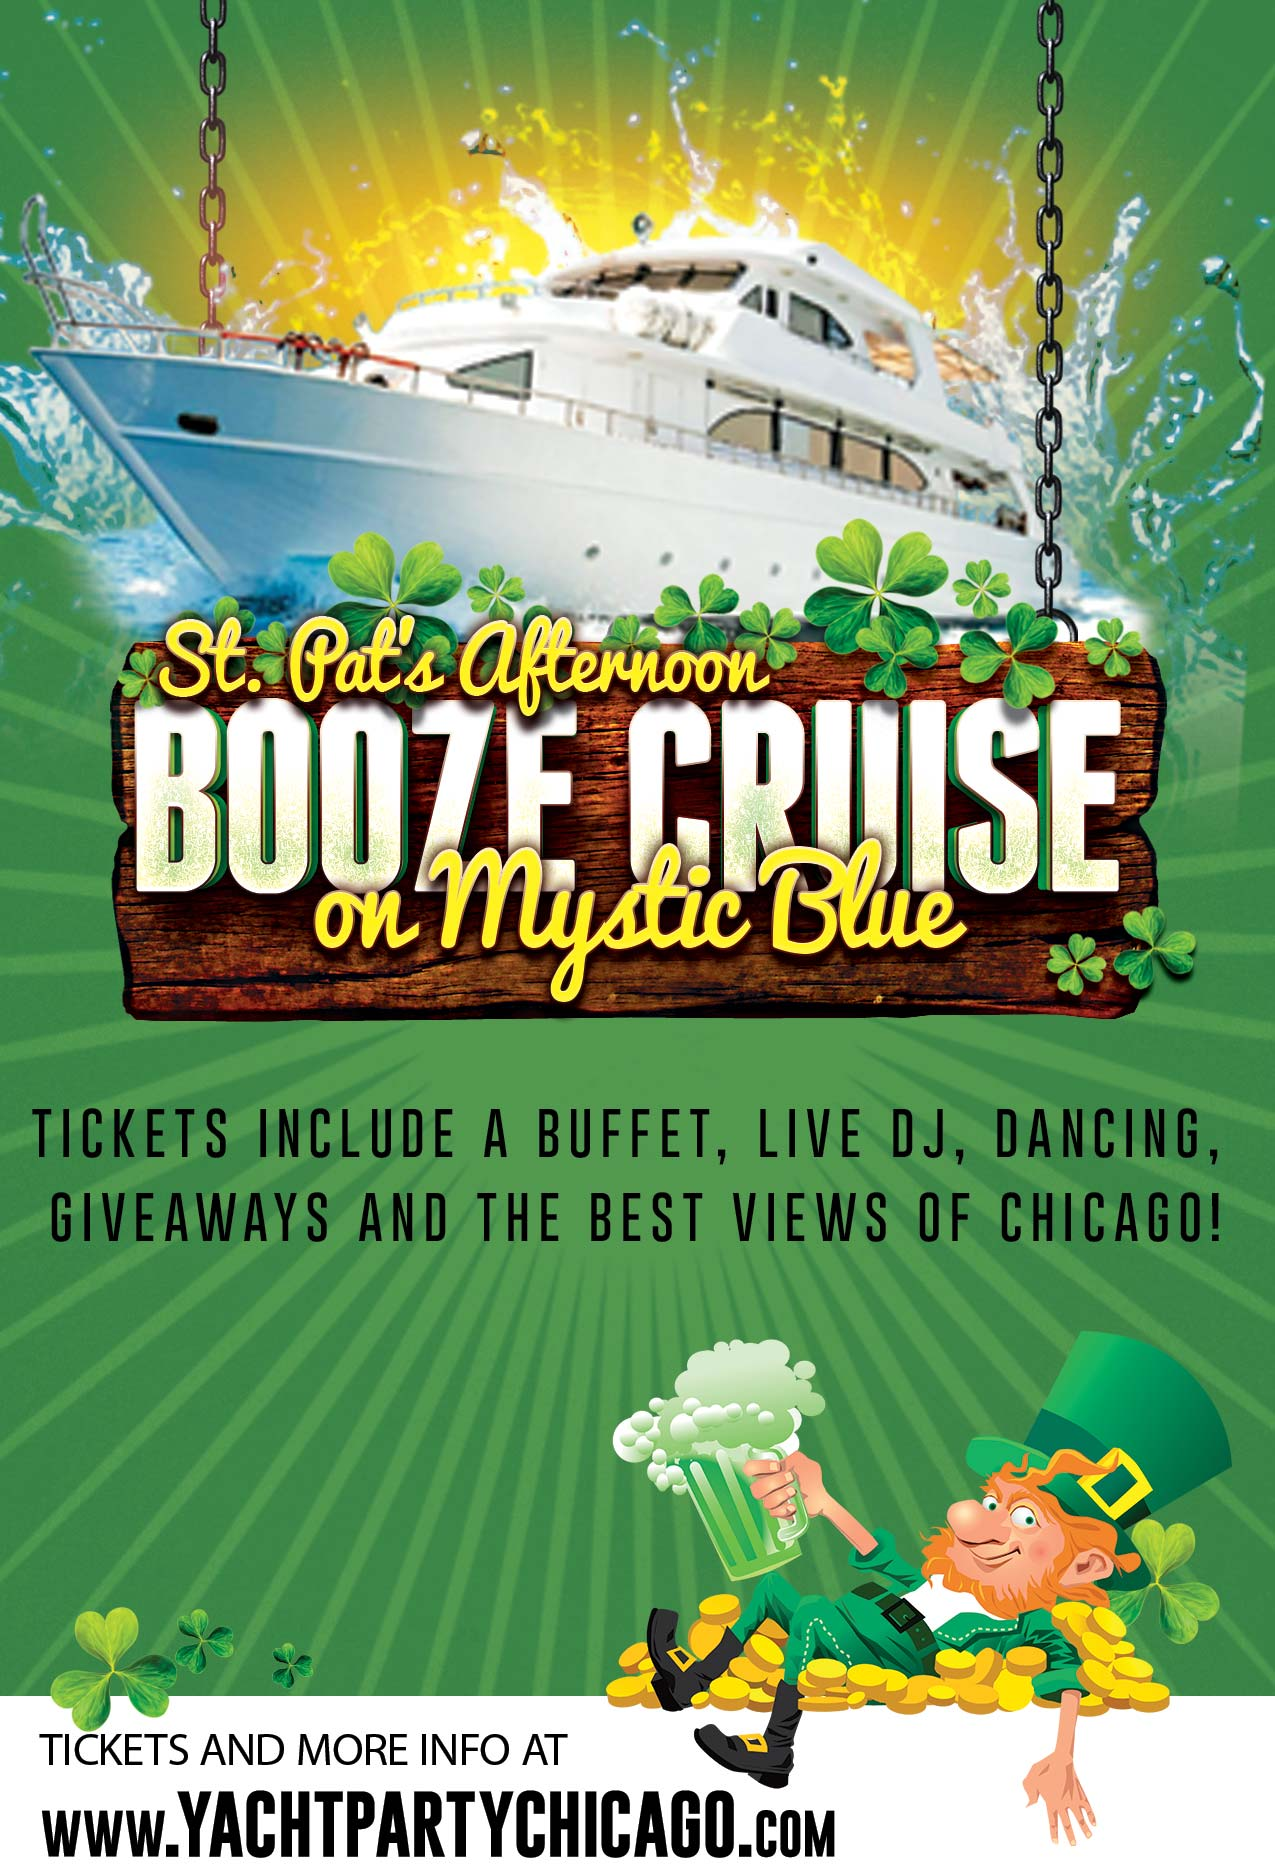 St. Patrick's Day Afternoon Booze Cruise Party on Mystic Blue - Tickets include a Live DJ, Dancing, Giveaways, and the best views of Chicago!